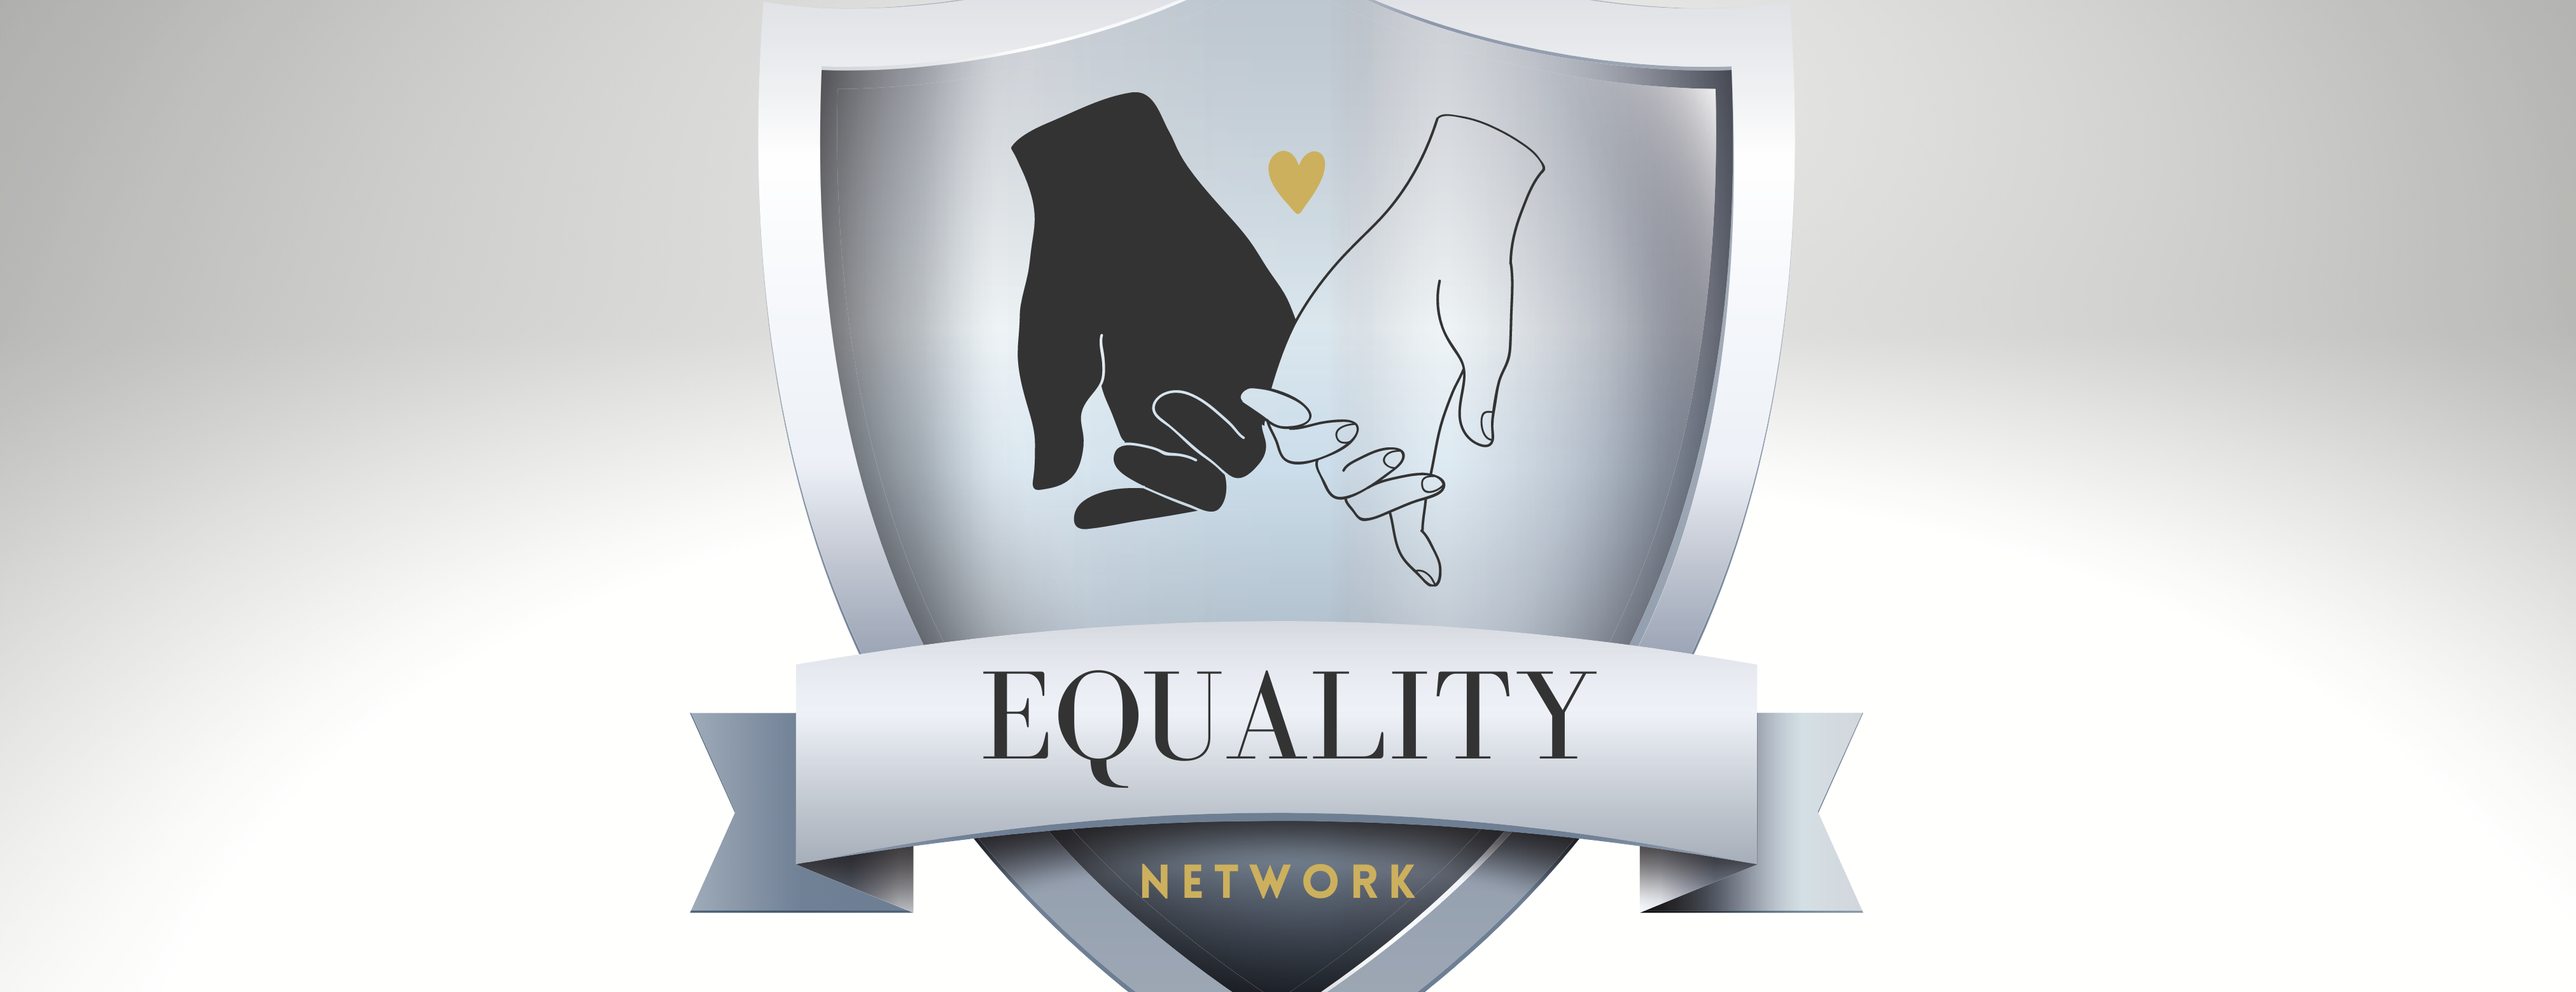 Equality Network